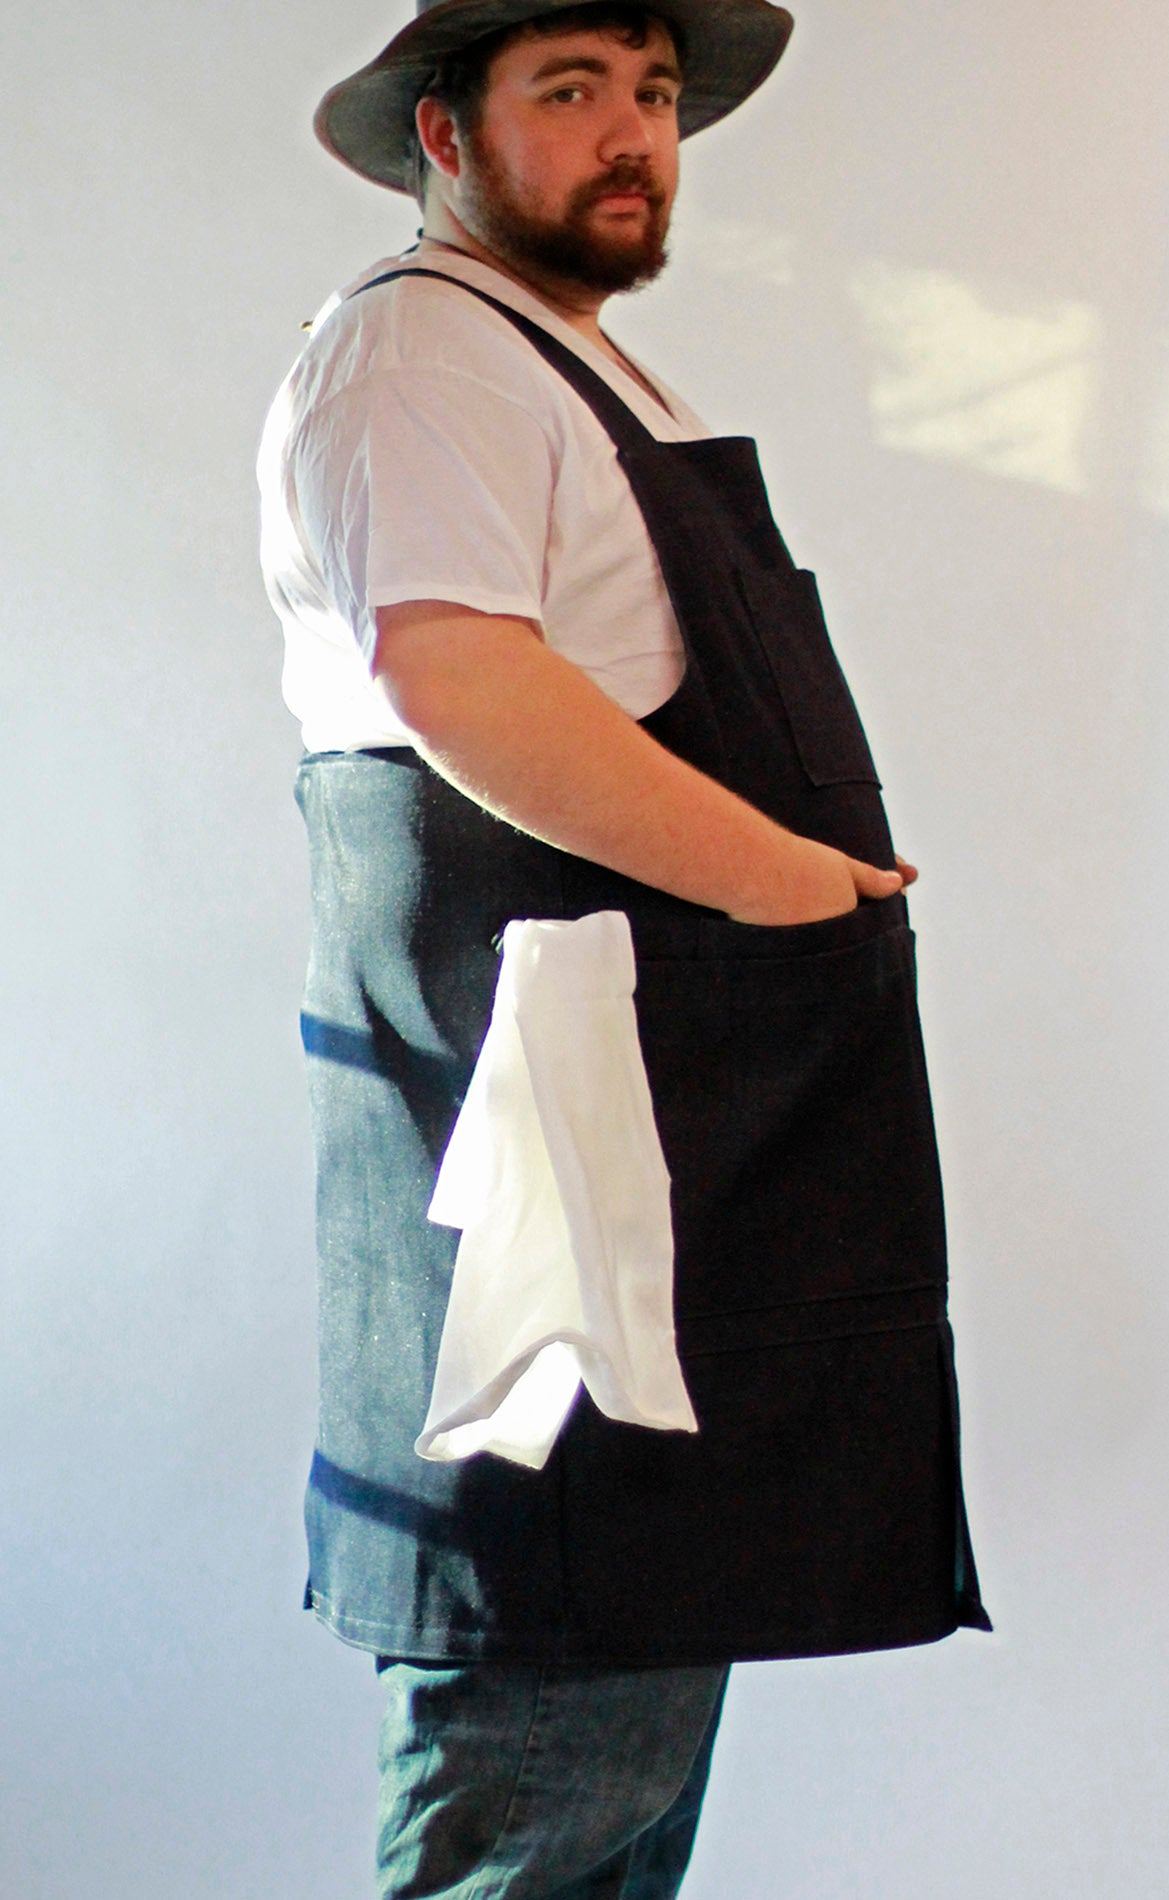 Walter's Apron ™ - Side View